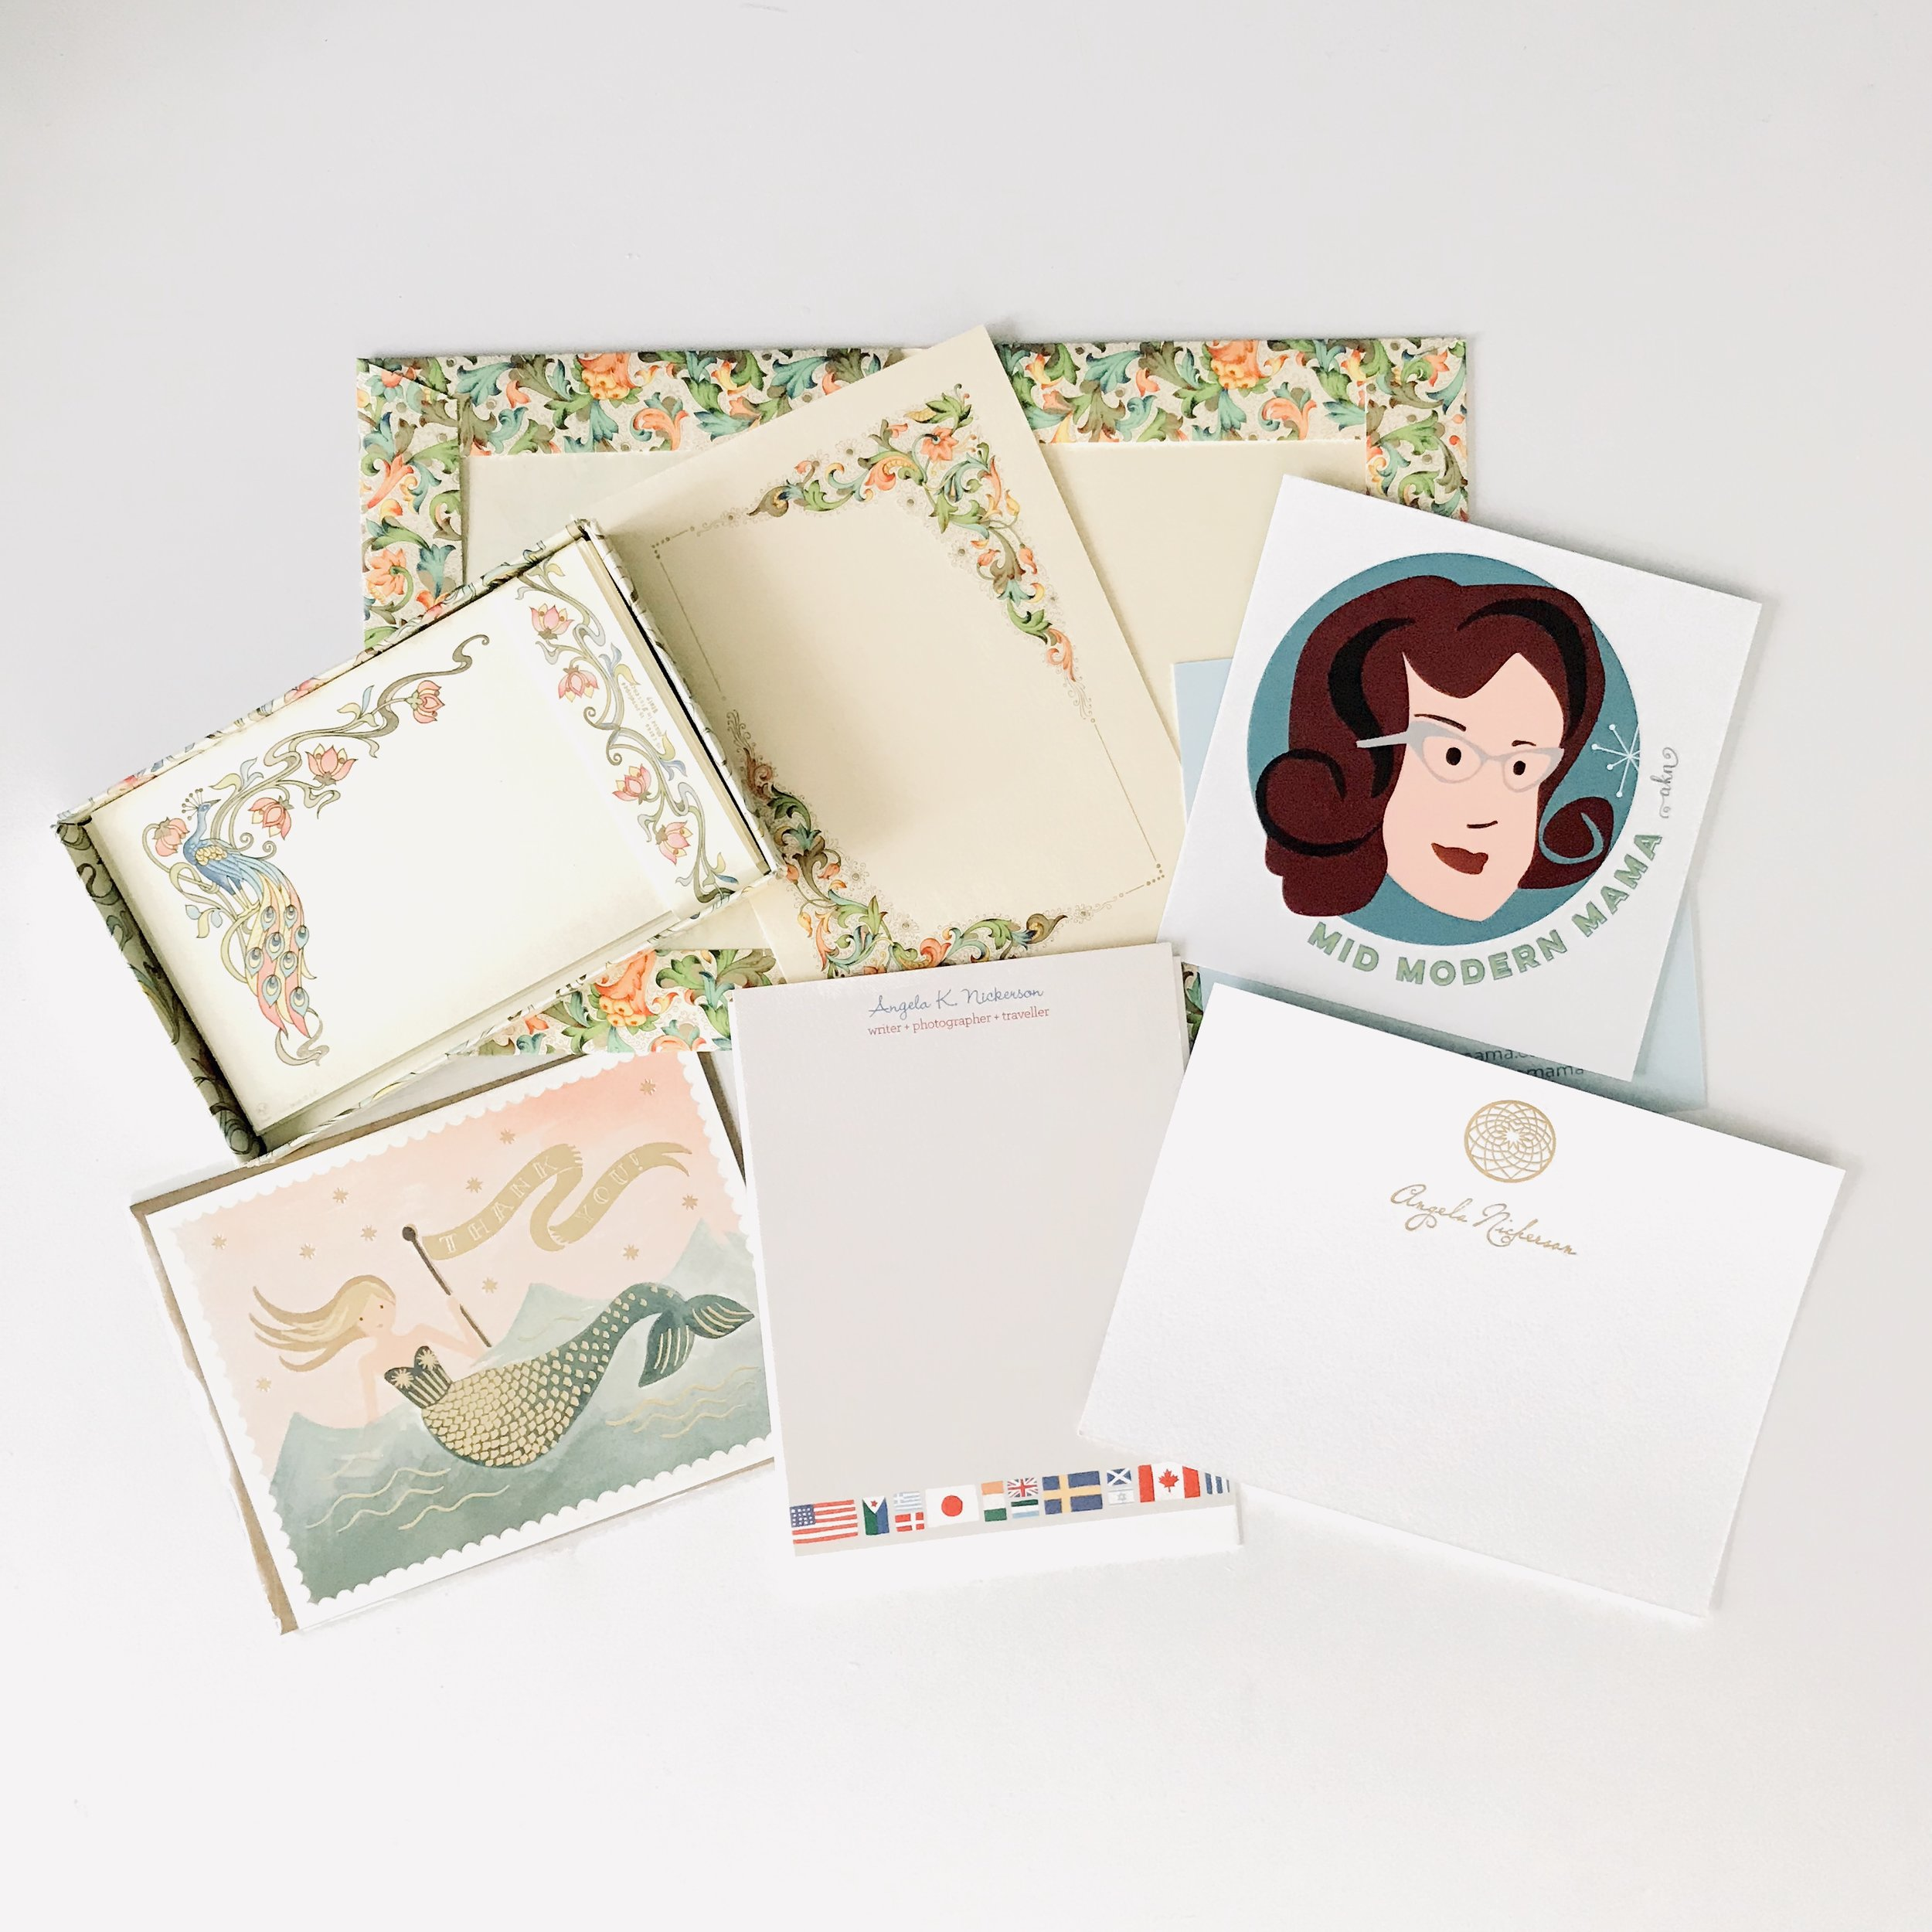 Some of my favorite stationery for thank you notes